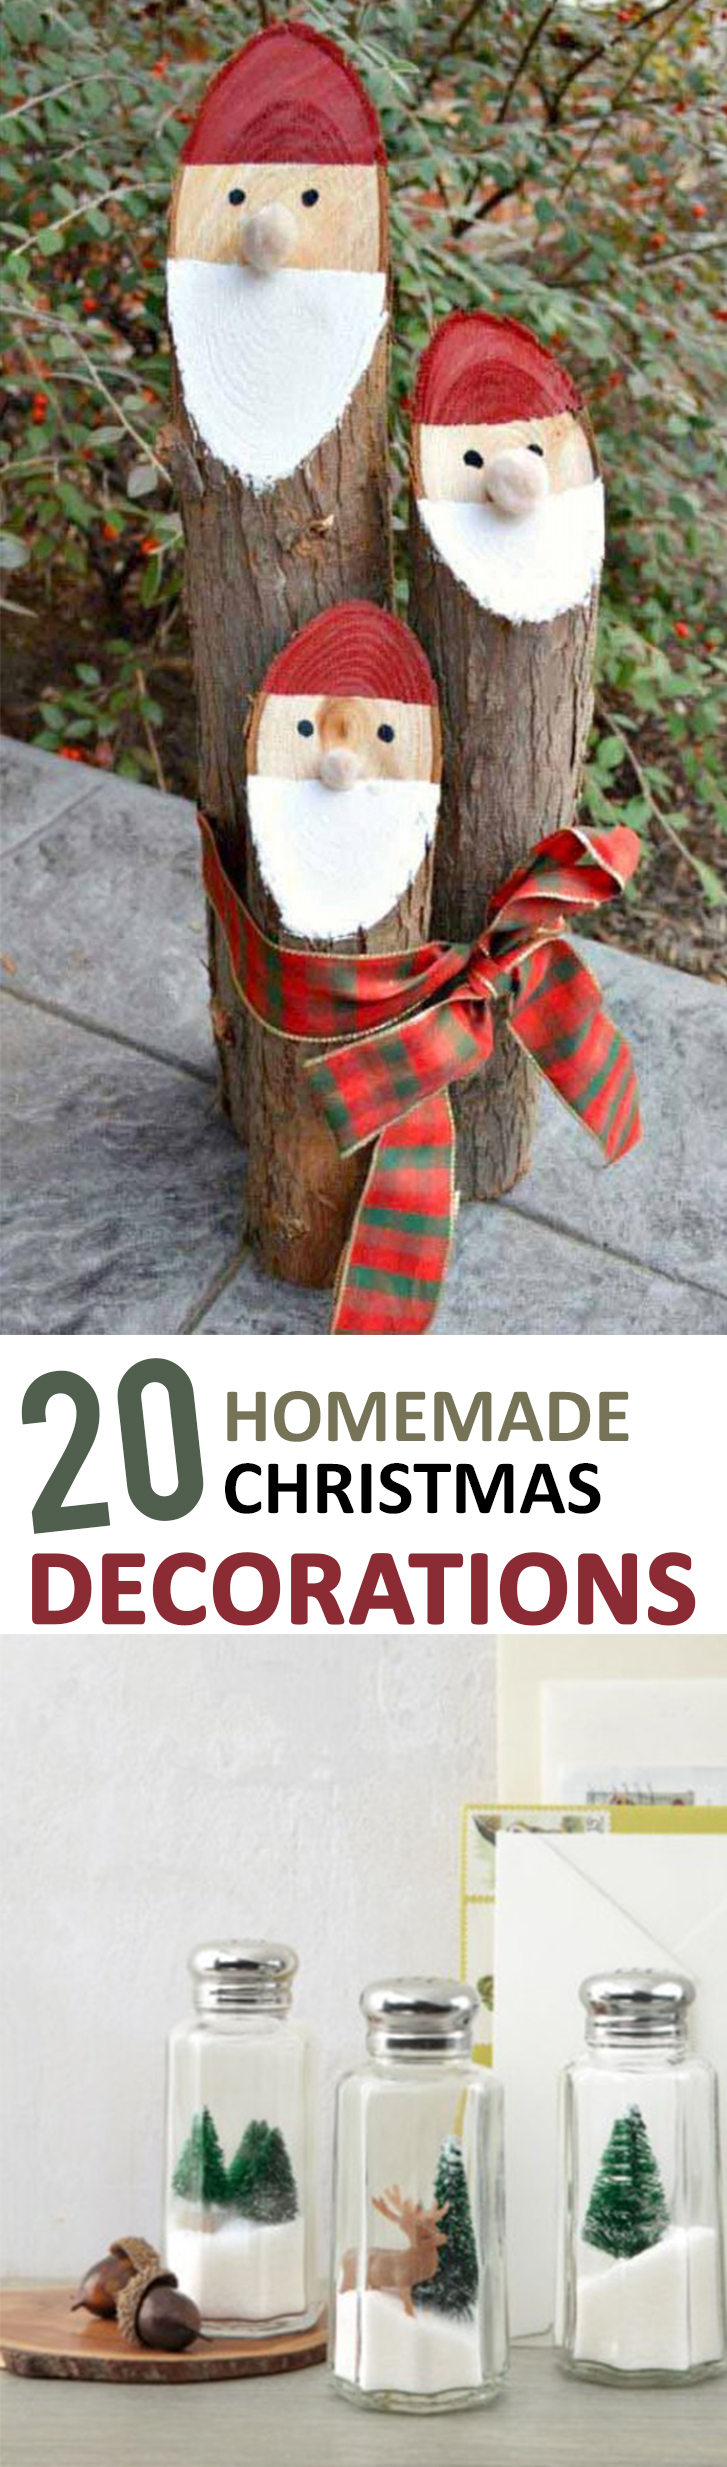 20 homemade christmas decorations Easy christmas decorations to make at home